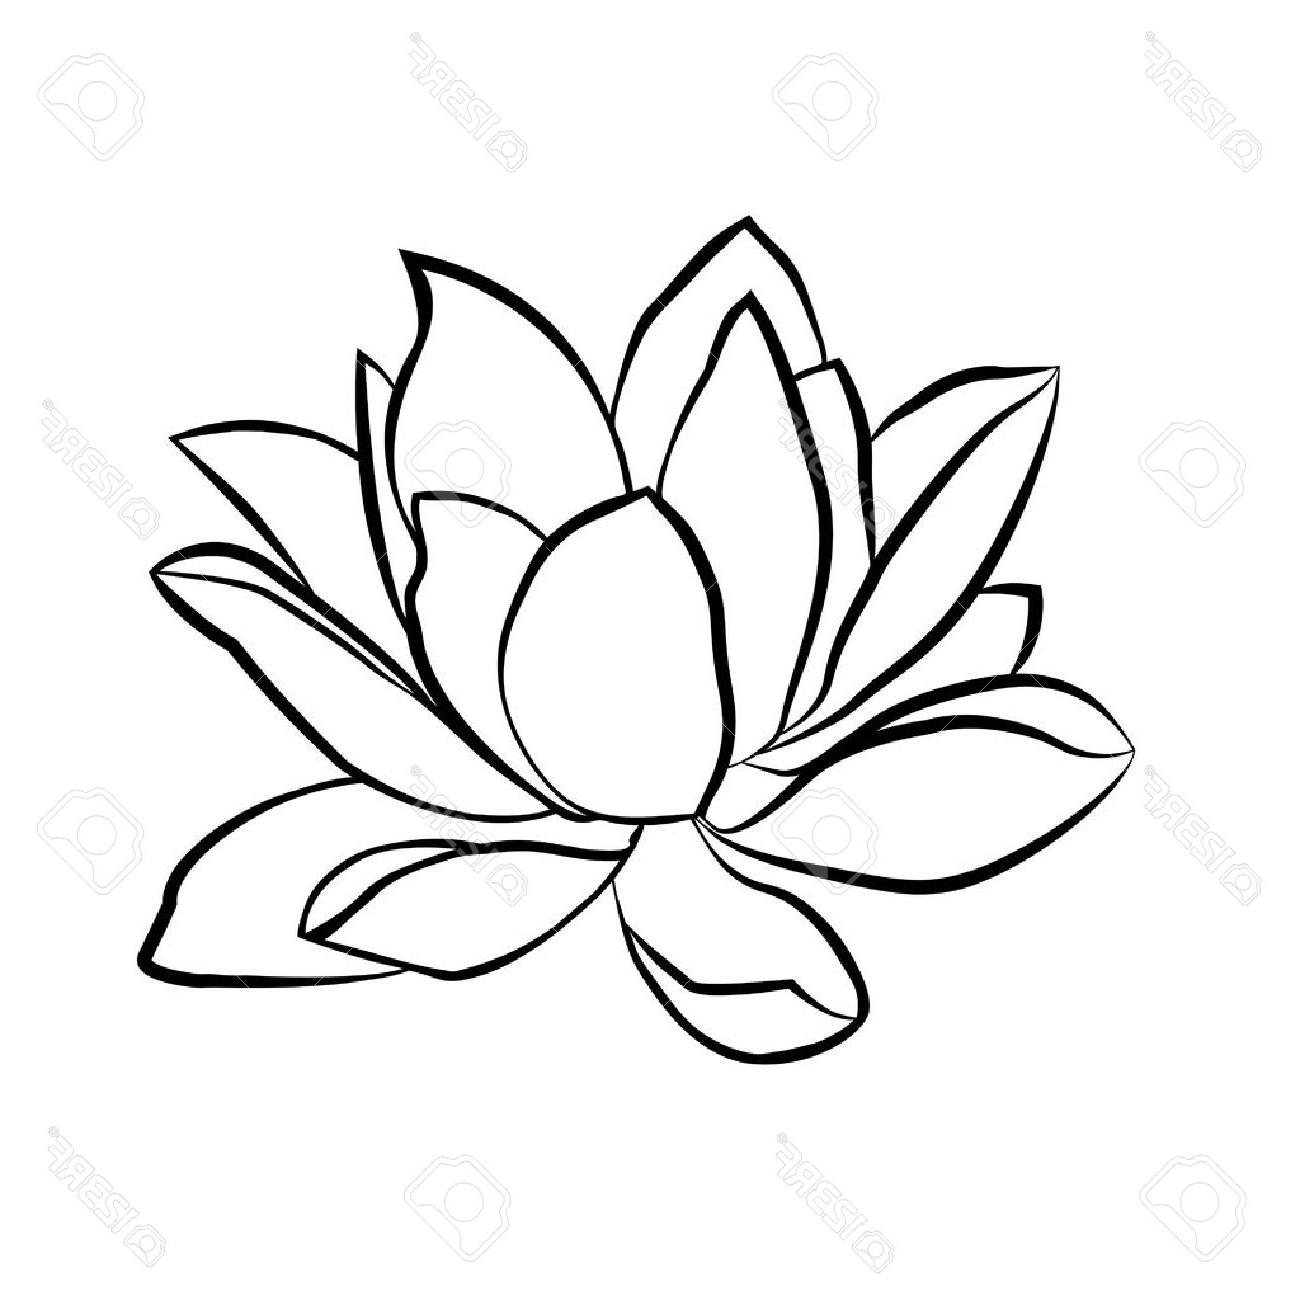 Plant Drawing Black And White At Getdrawings Free For Personal